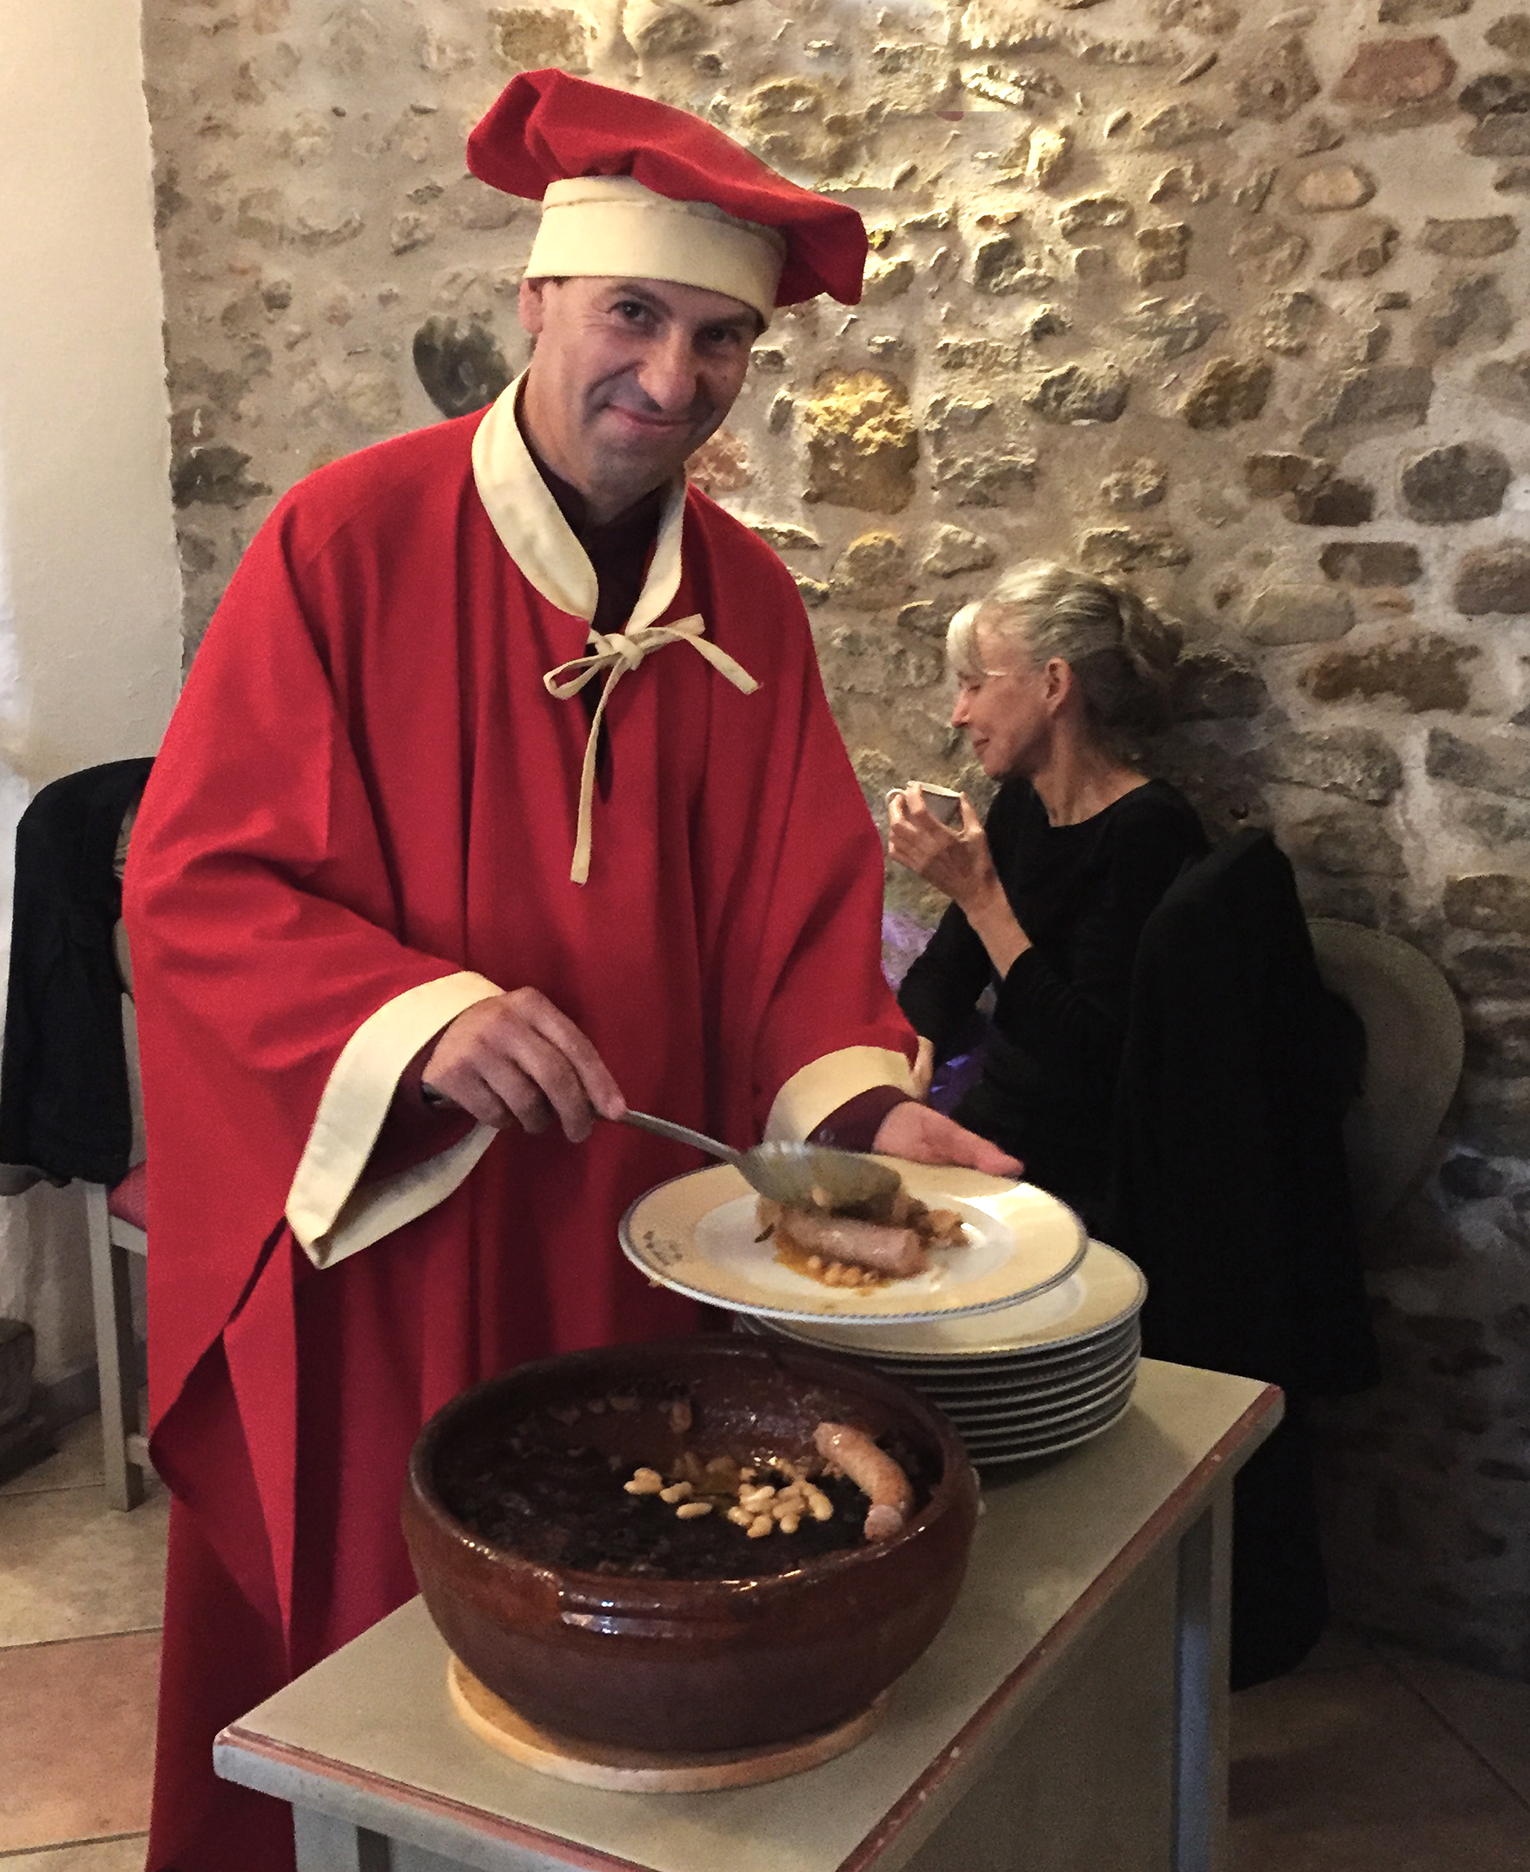 In full confrérie attire to serve cassoulet